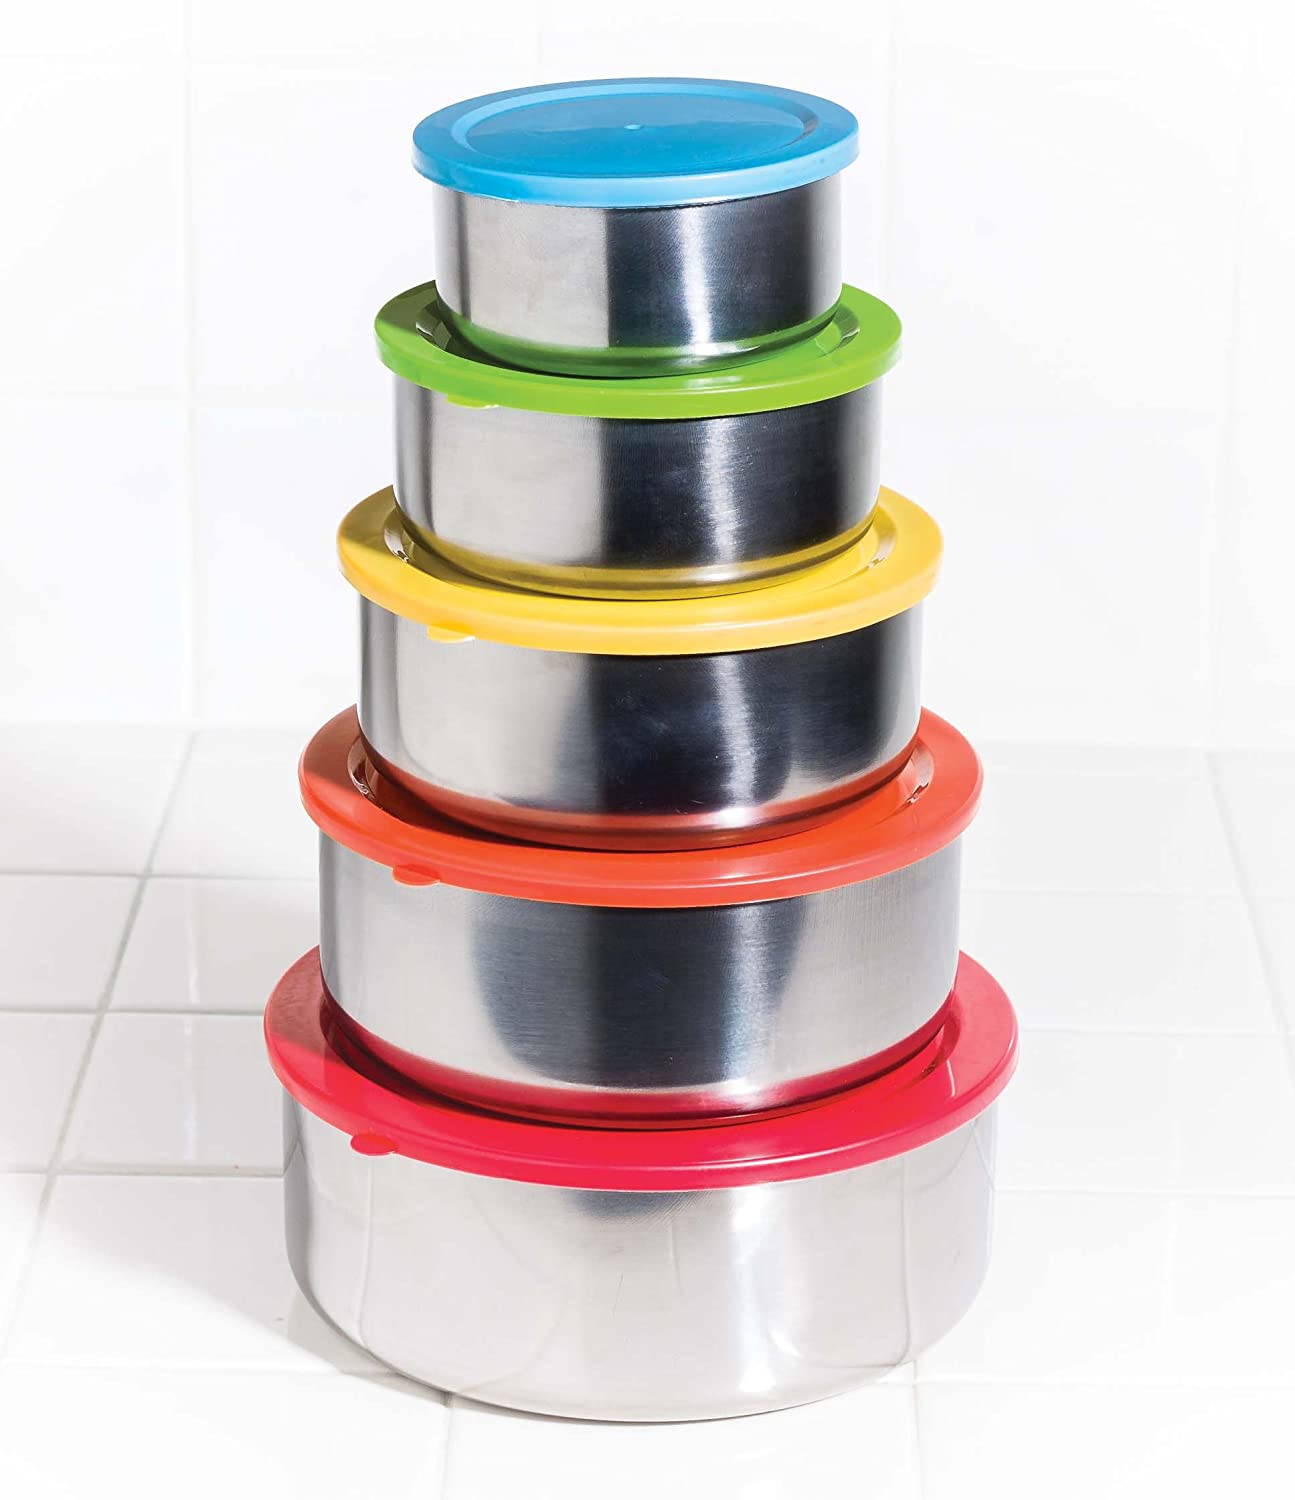 Stainless steel storage containers for kitchen - Amazon Com 10 Pcs Stainless Steel Mixing Bowls Or Food Storage Containers Set With Colored Lids Kitchen Dining